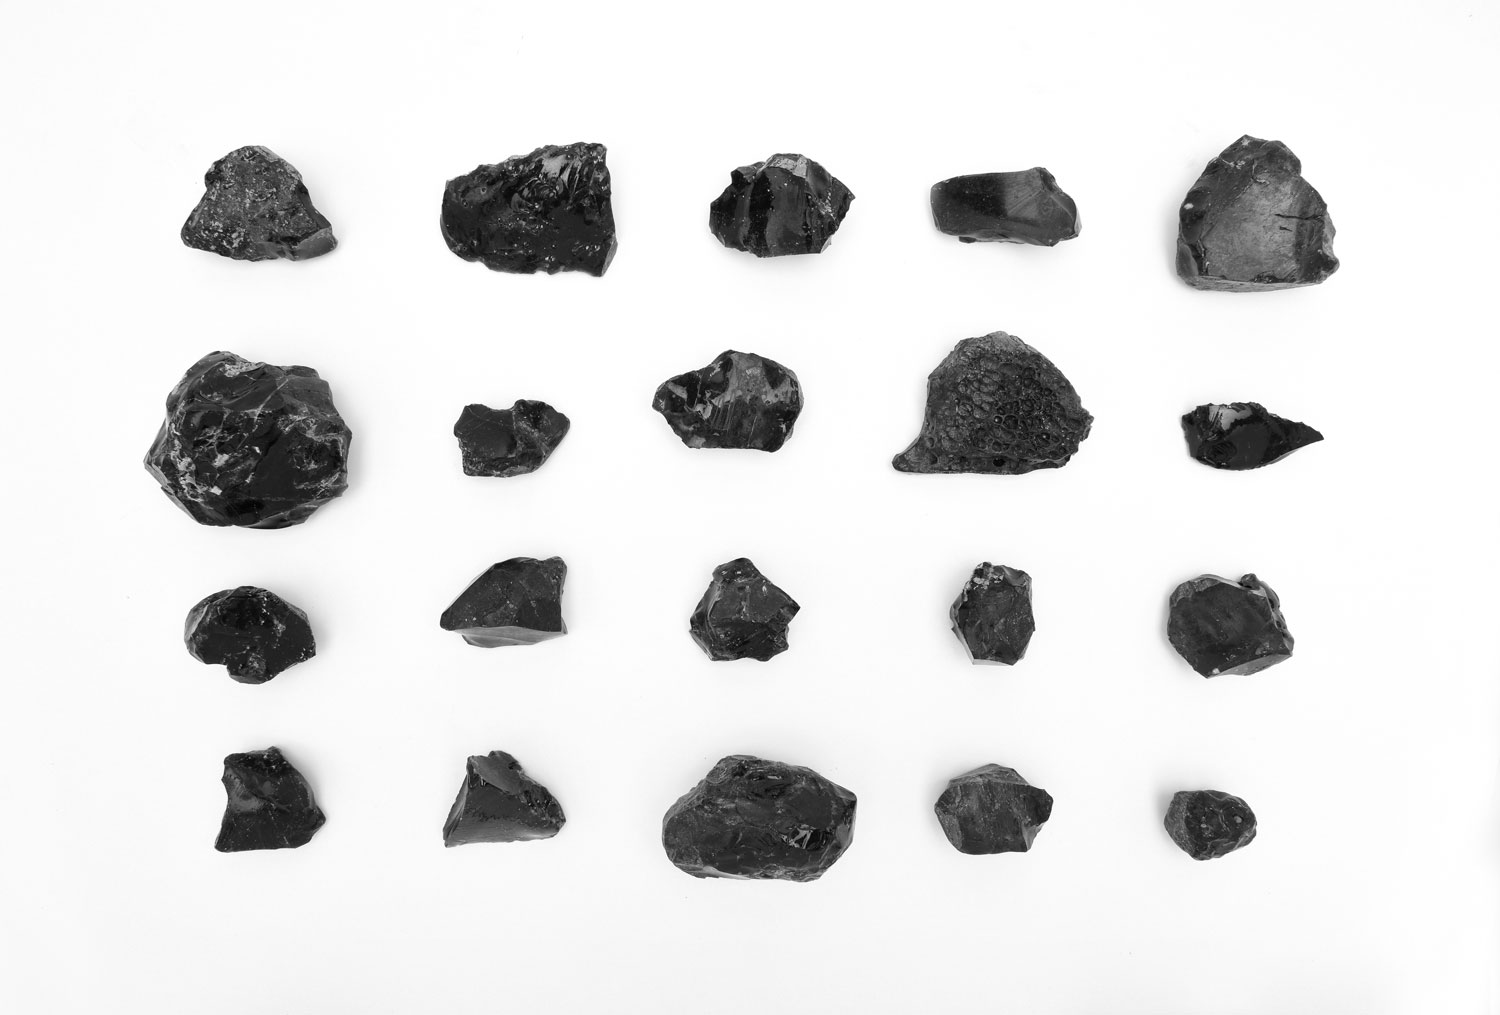 Obsidian specimens from the day